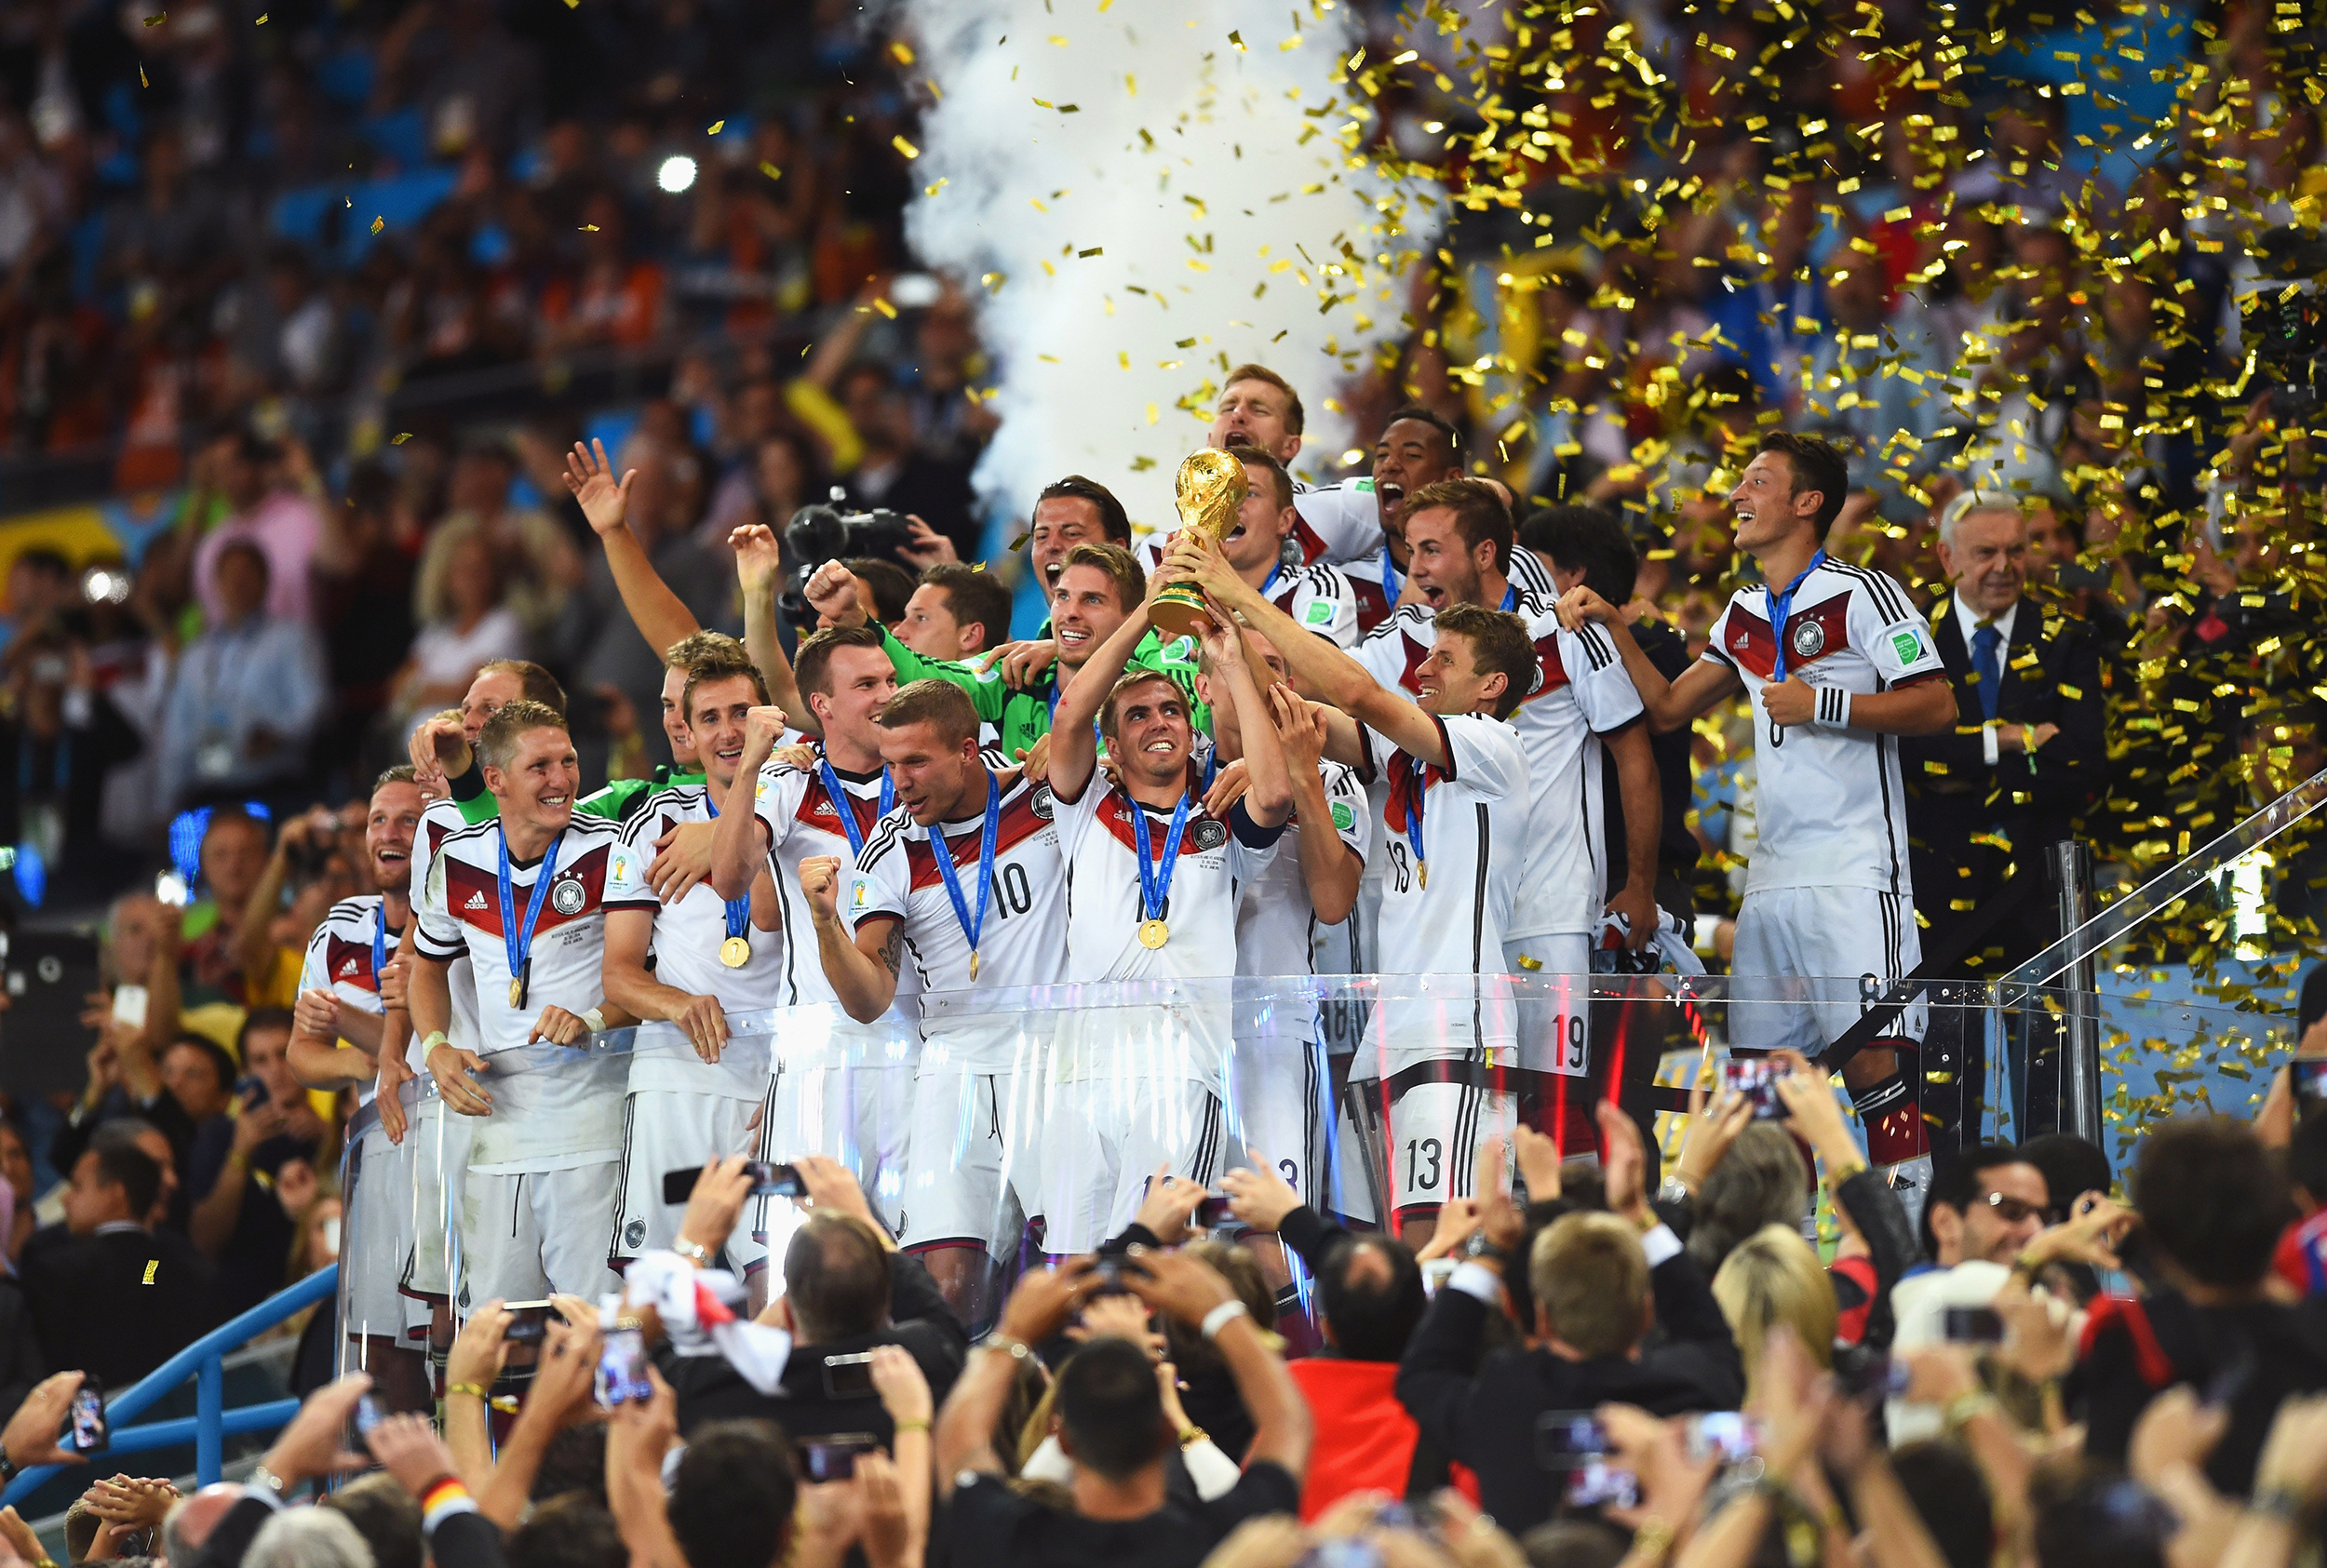 Germany Triumphs Over Argentina in World Cup Final NBC News